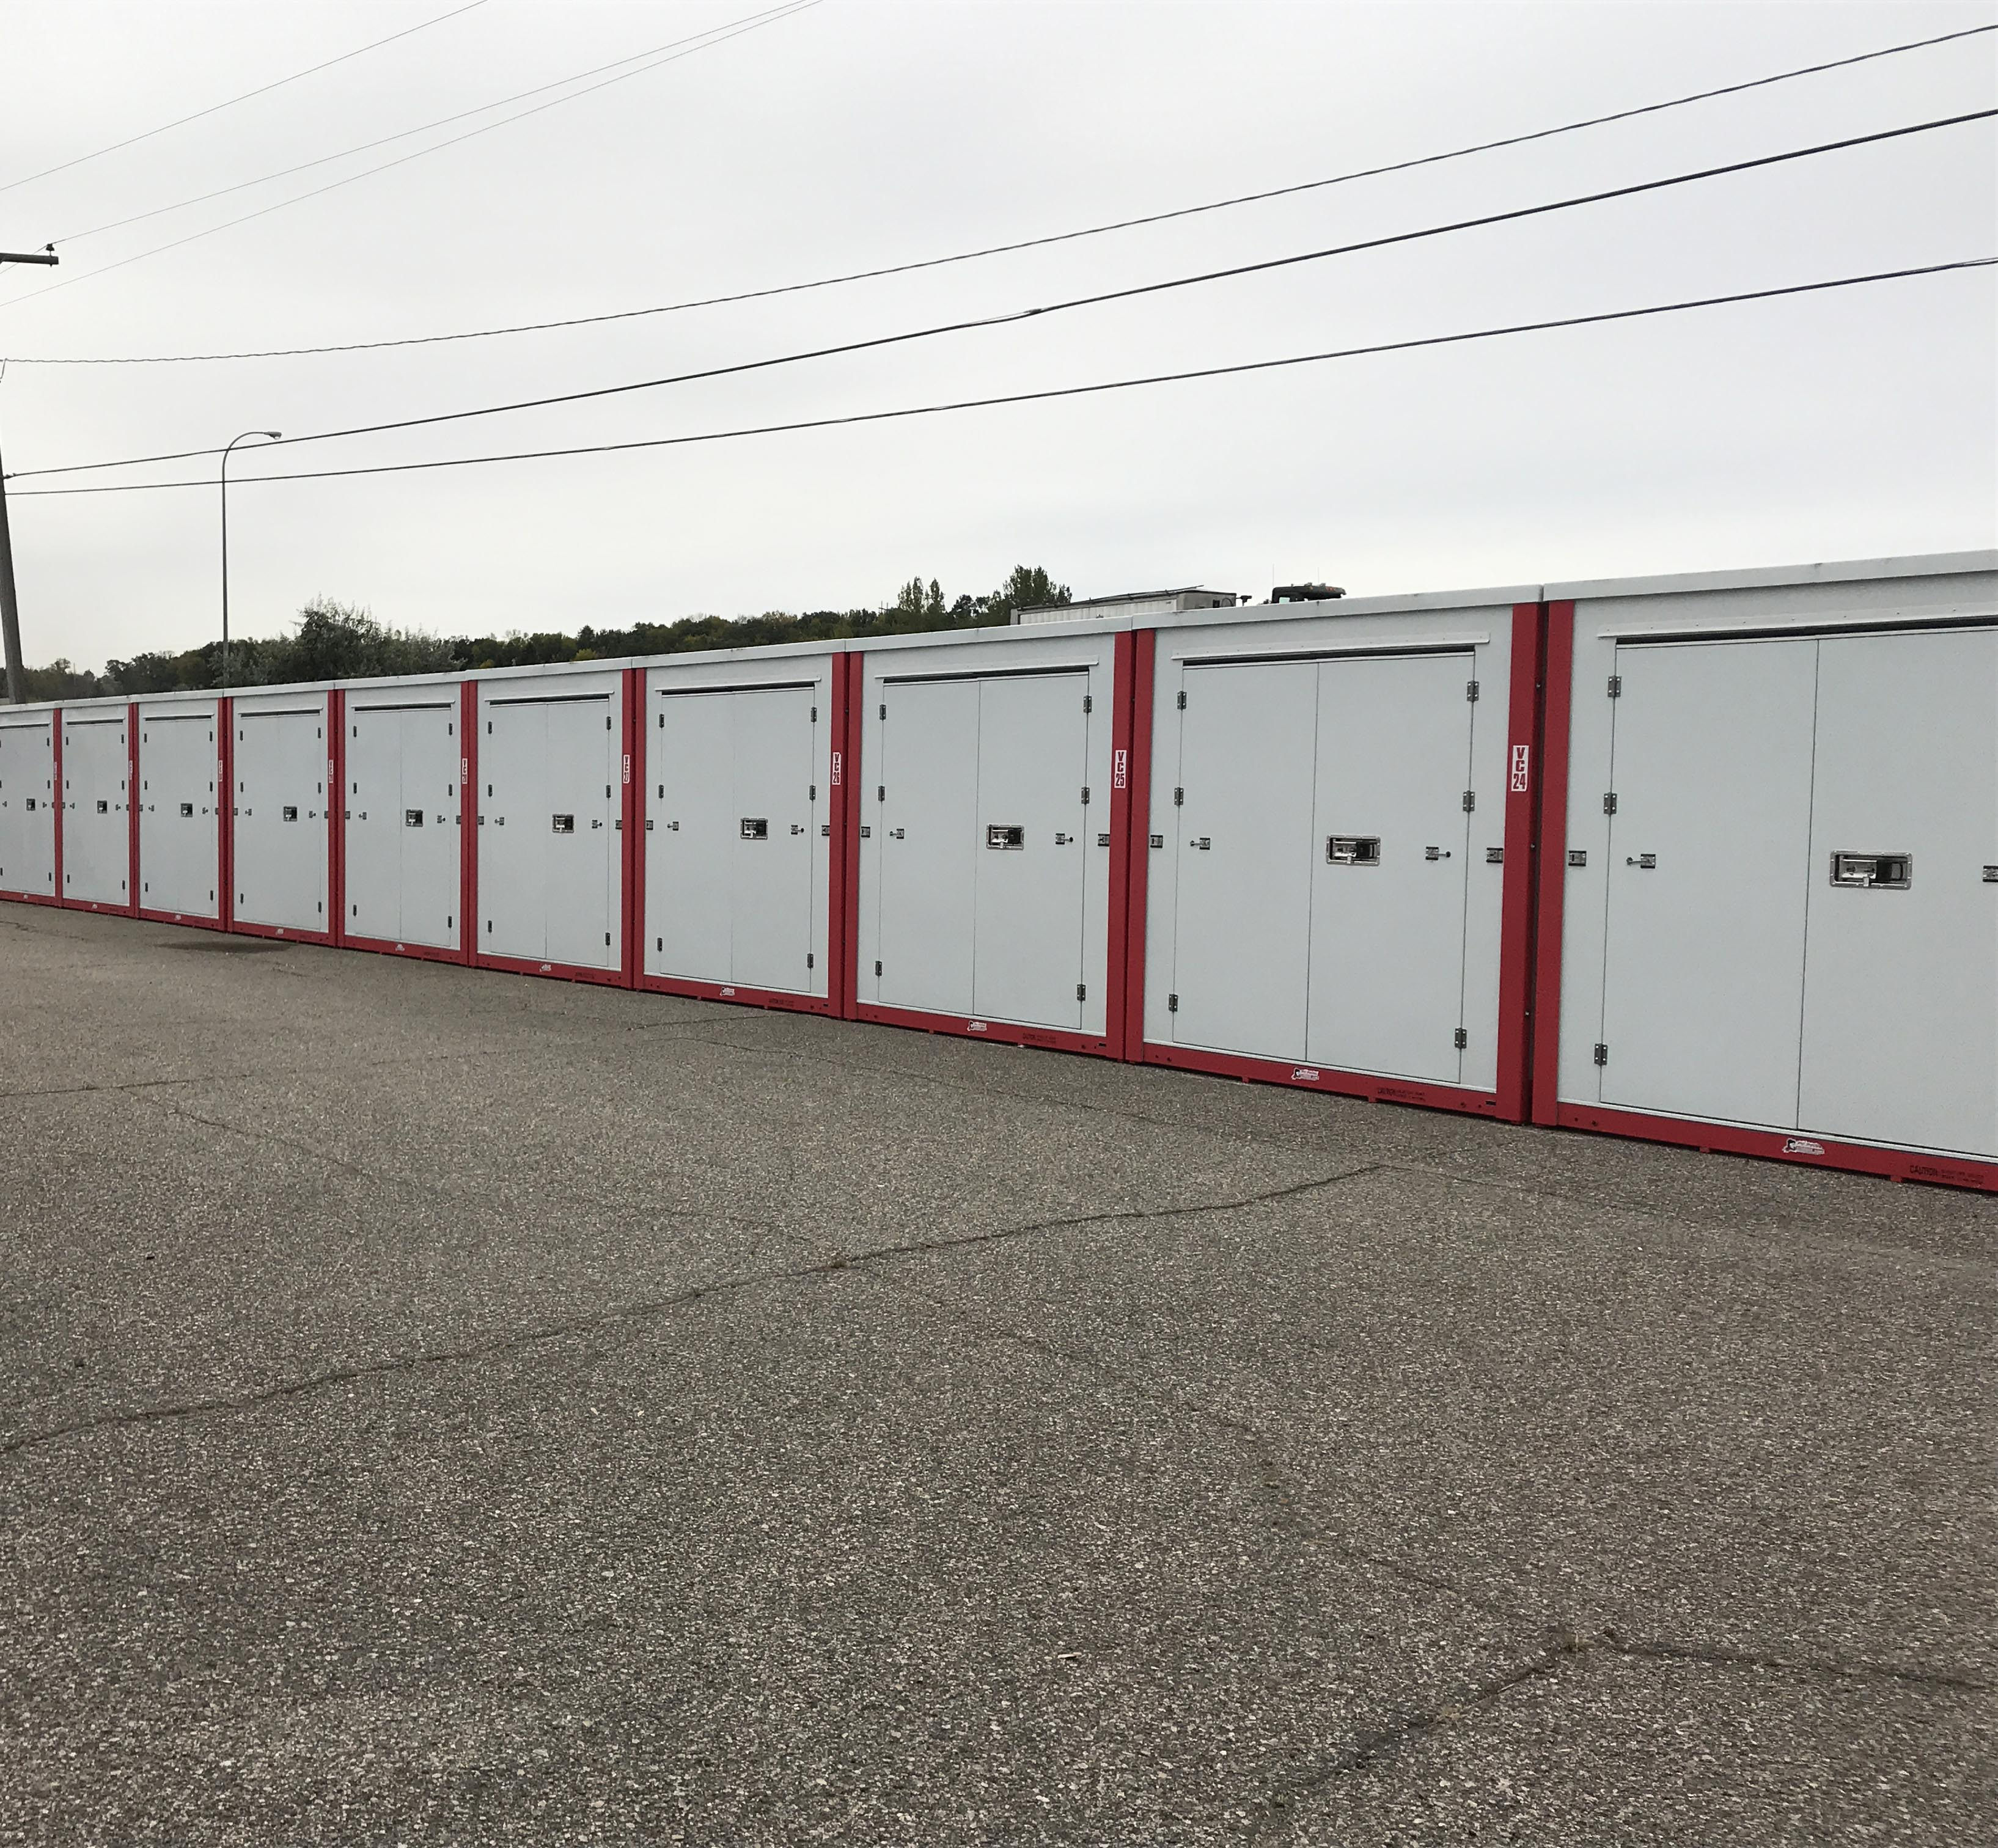 8'x20' Outside Storage Unit Containers